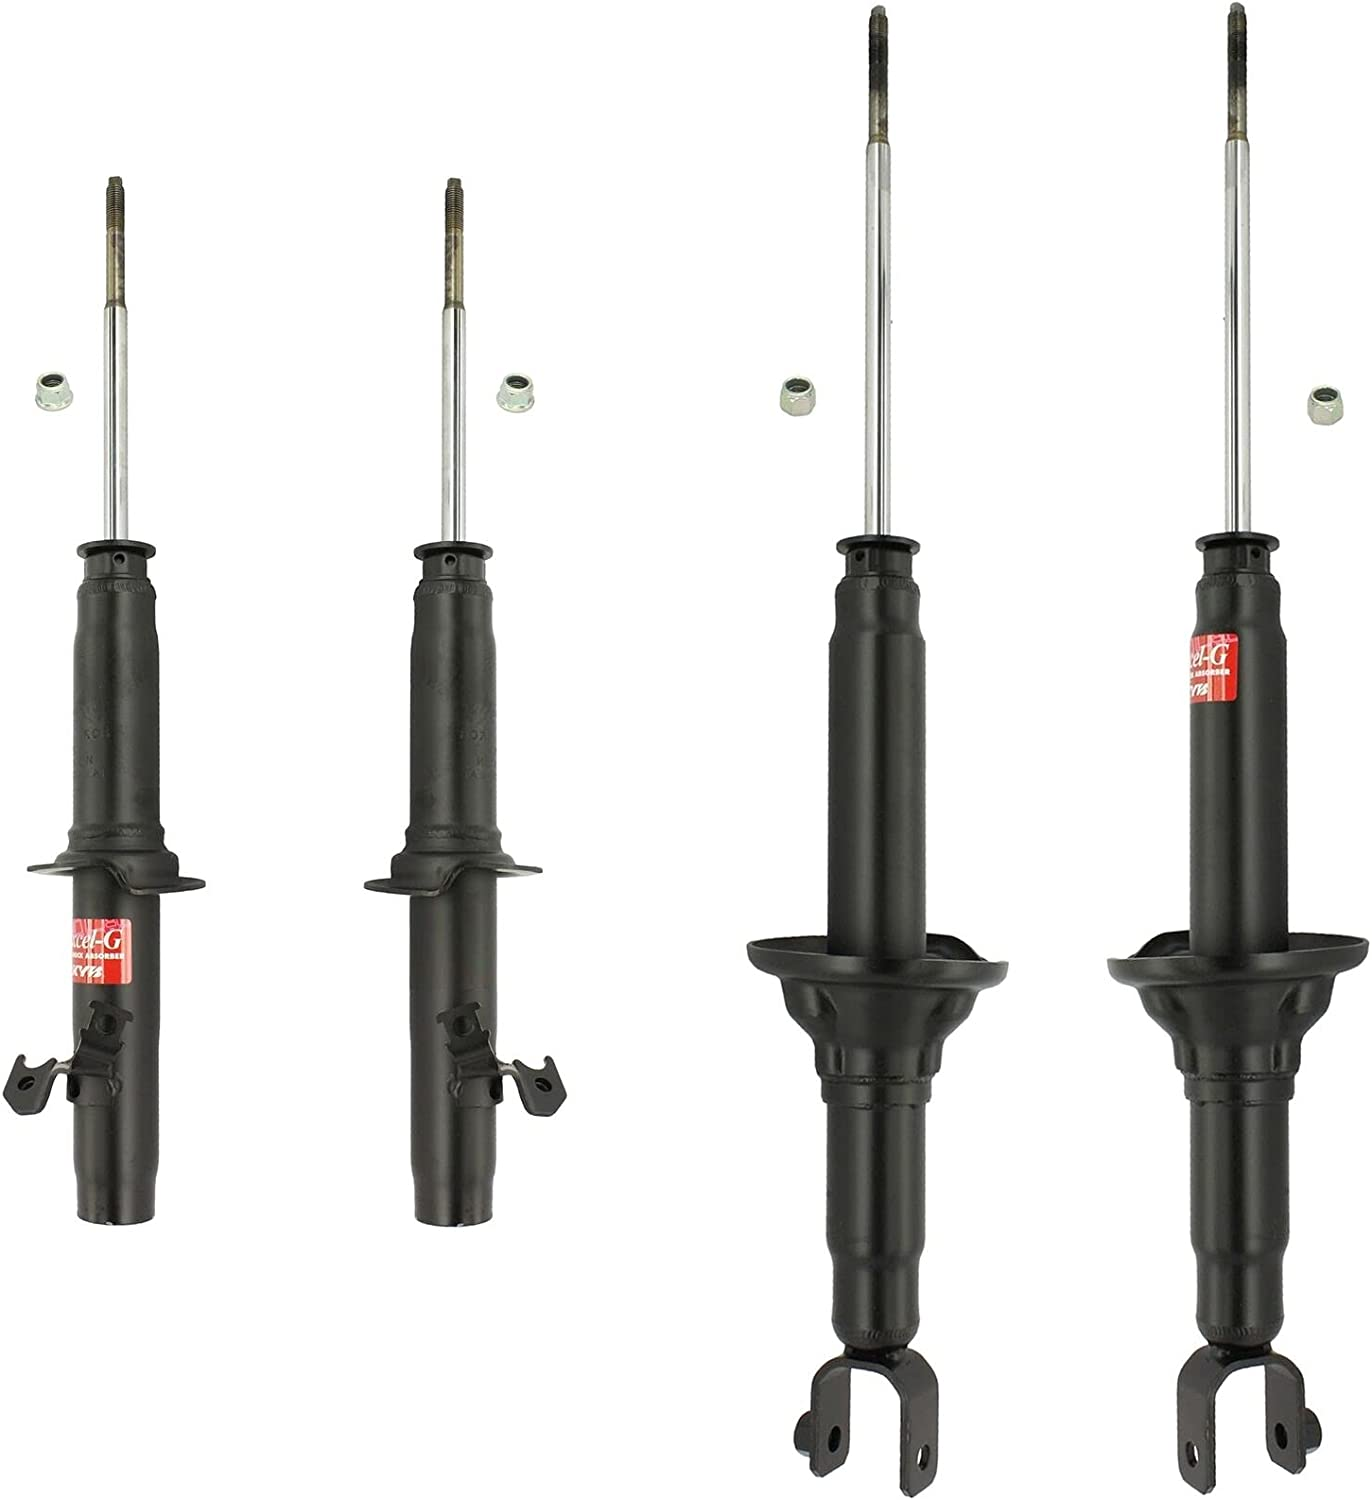 Front and Rear Suspension Struts Accor Compatible Industry No. 1 kit with Honda Popularity